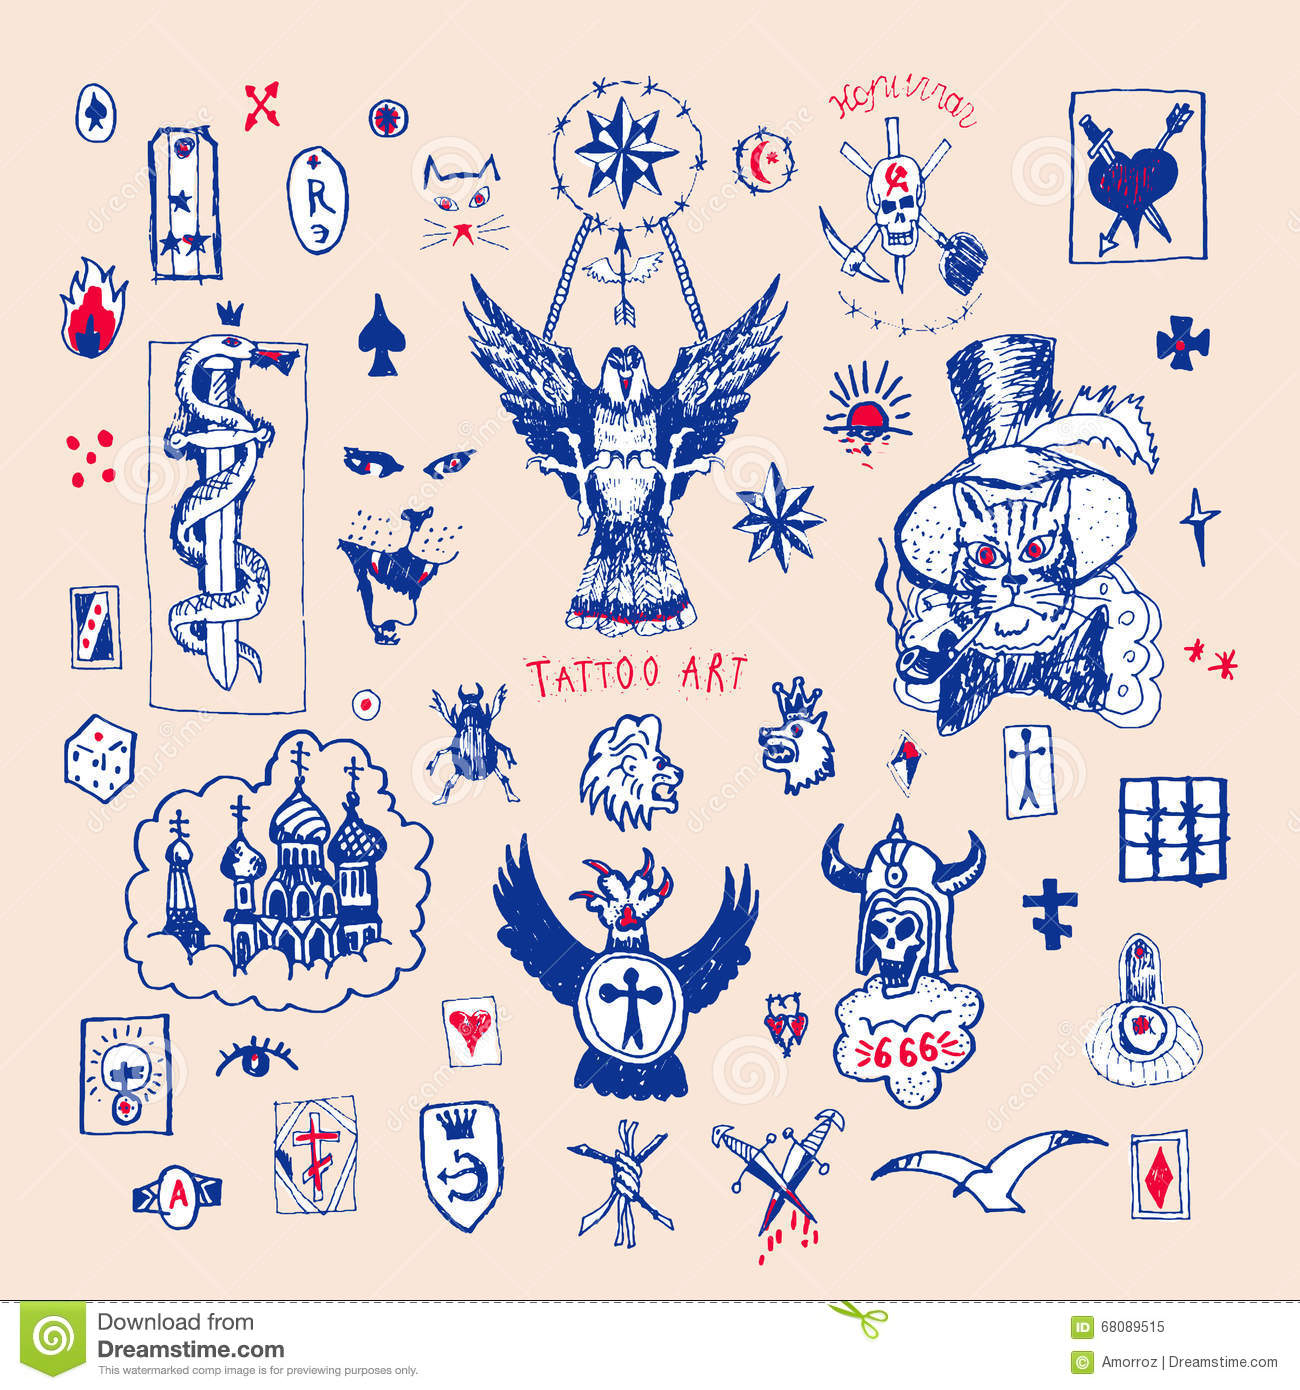 15 russian star tattoo designs 2745 best images about tactical gear on pinterest navy - Image de tatouage ...